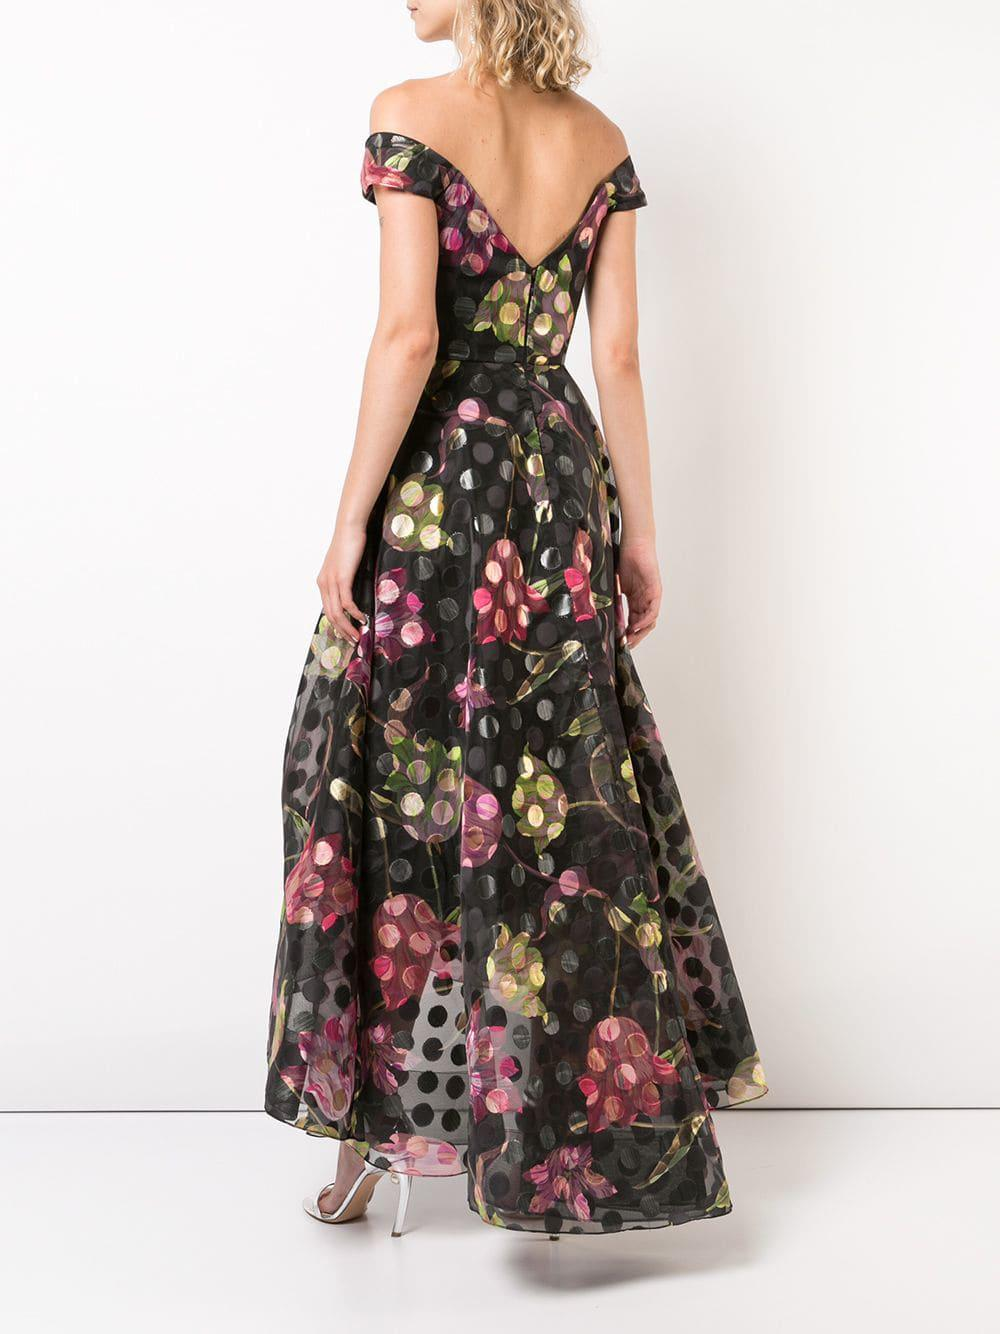 d1c142588f Marchesa notte - Black Off-the-shoulder Floral Dress - Lyst. View fullscreen